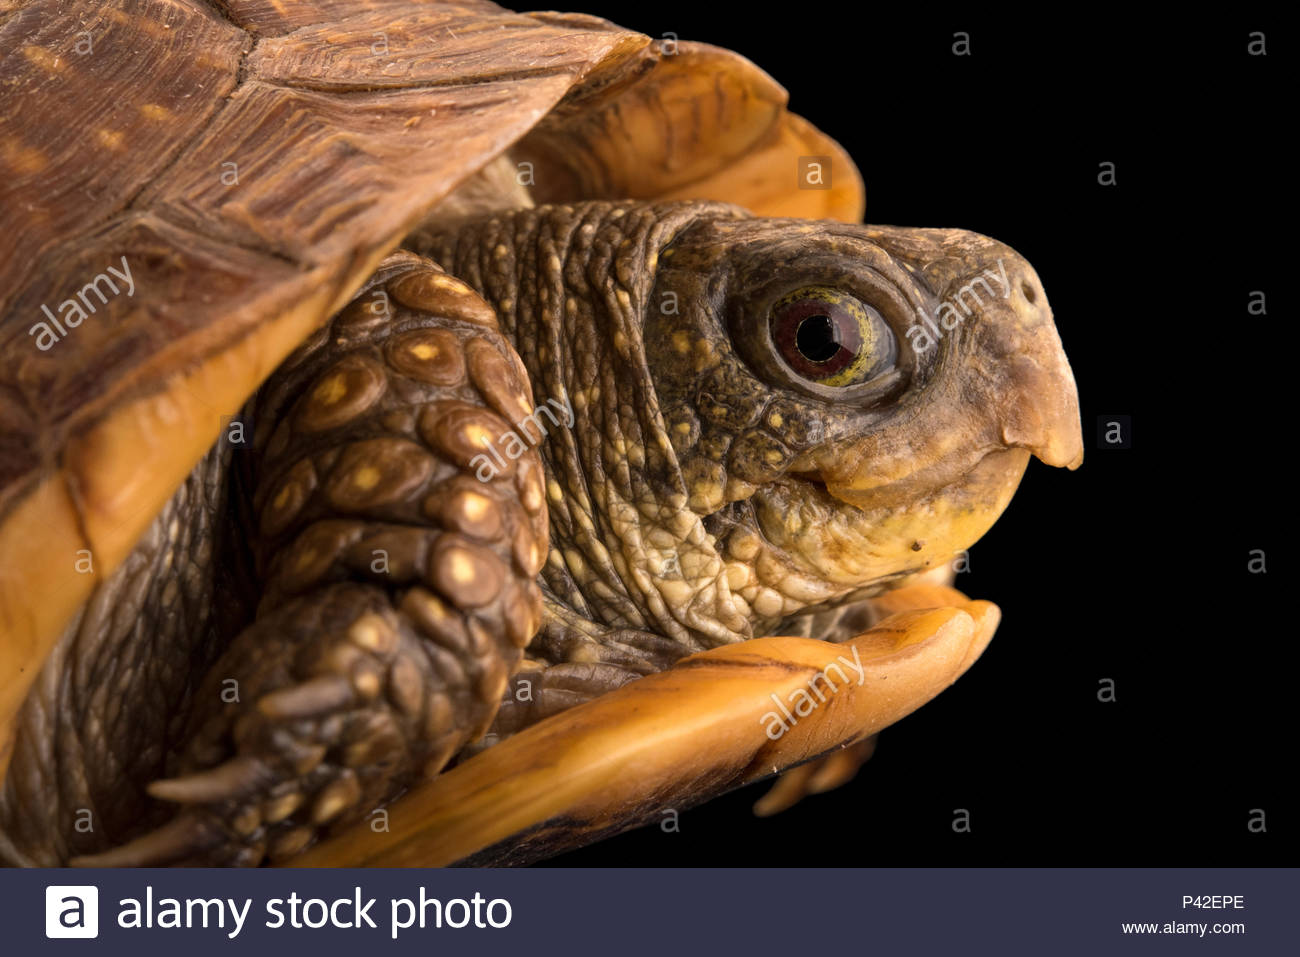 Northern spotted box turtle, Terrapene nelsoni klauberi, at the Arizona-Sonora Desert Museum. Stock Photo